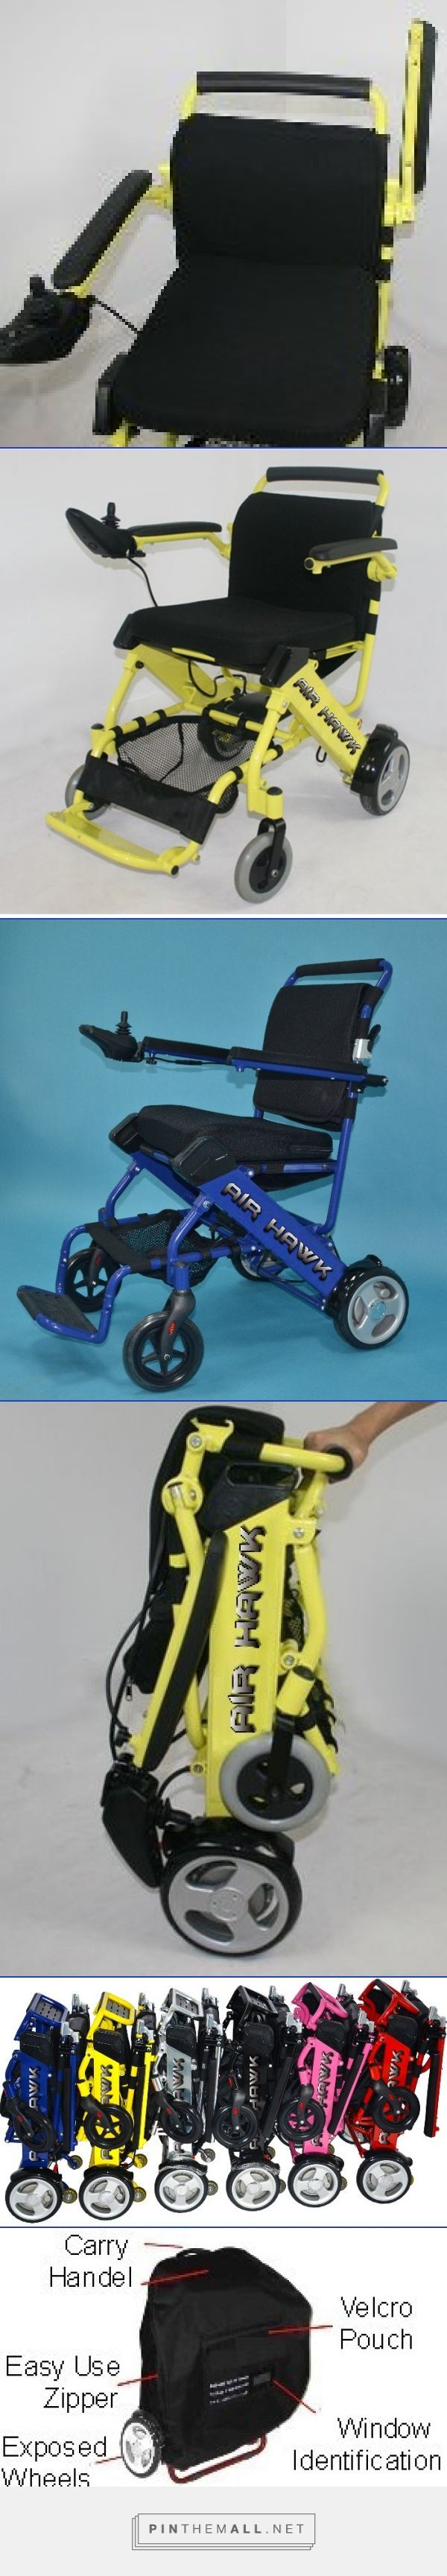 Pin on Lightweight Manual Wheelchairs